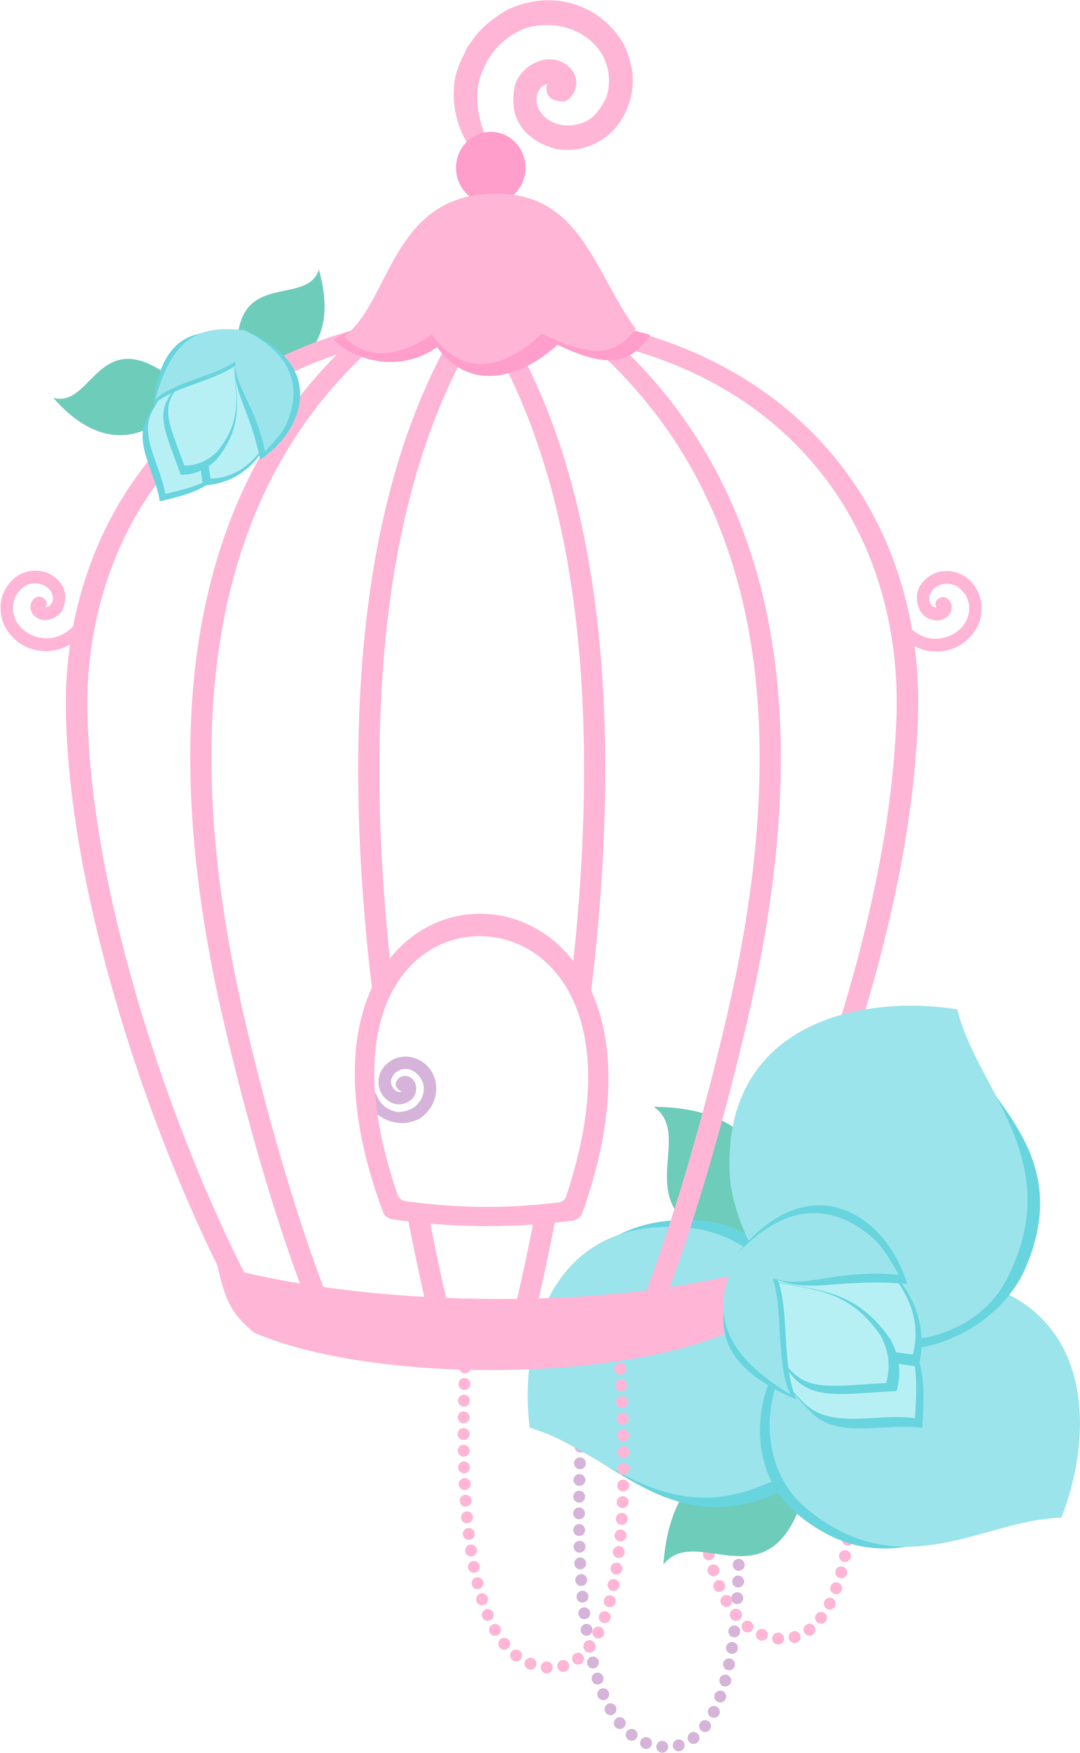 Nest clipart gets the worm. Aves pass ros corujas